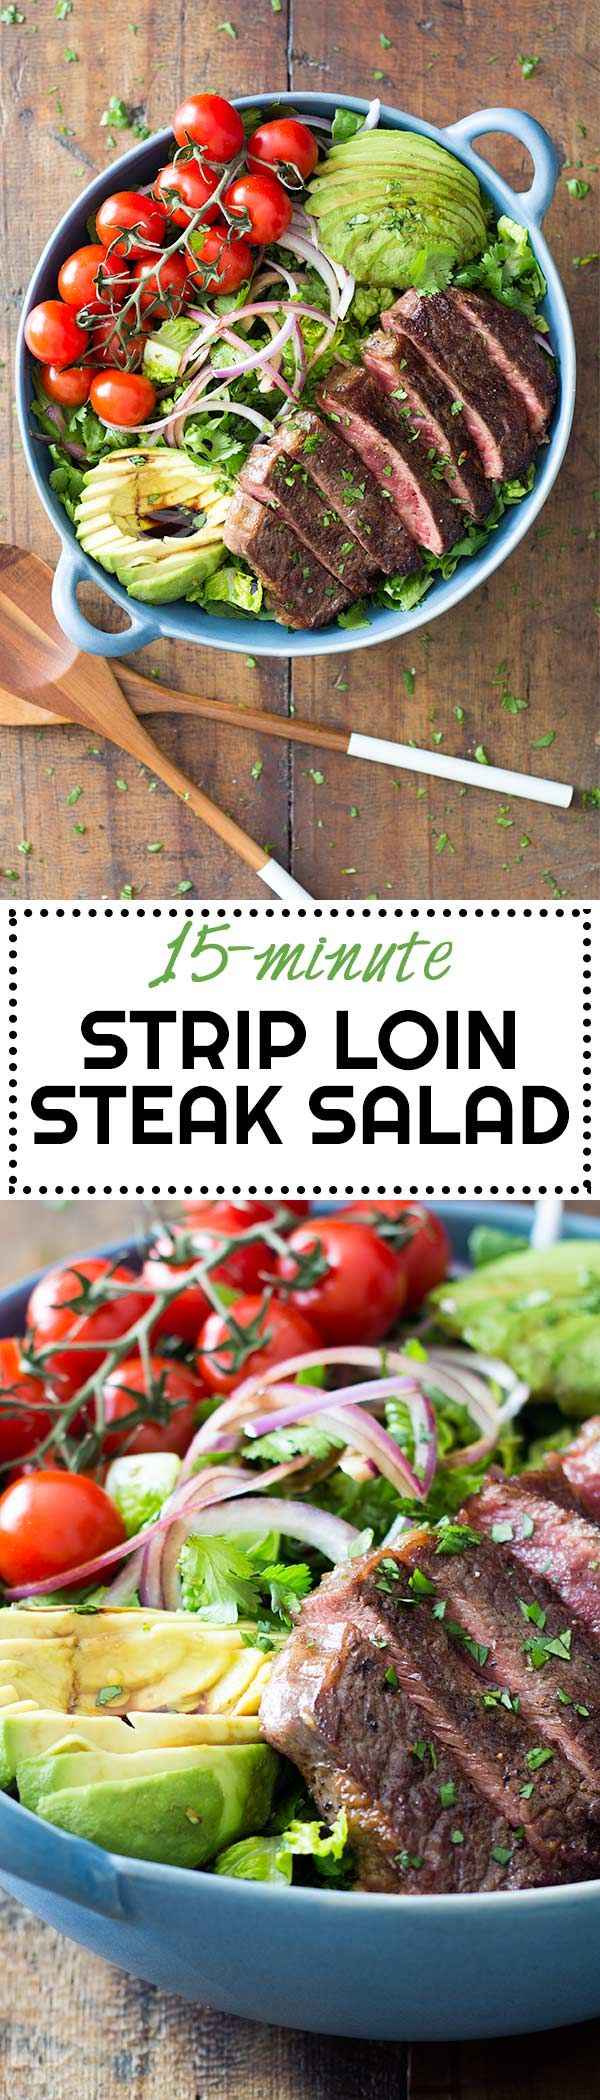 How about a delicious 15-minute prep pan-seared Strip Loin Steak on a Mexican-Style Salad? Does this sound like a good dinner? I thought so! via @greenhealthycoo